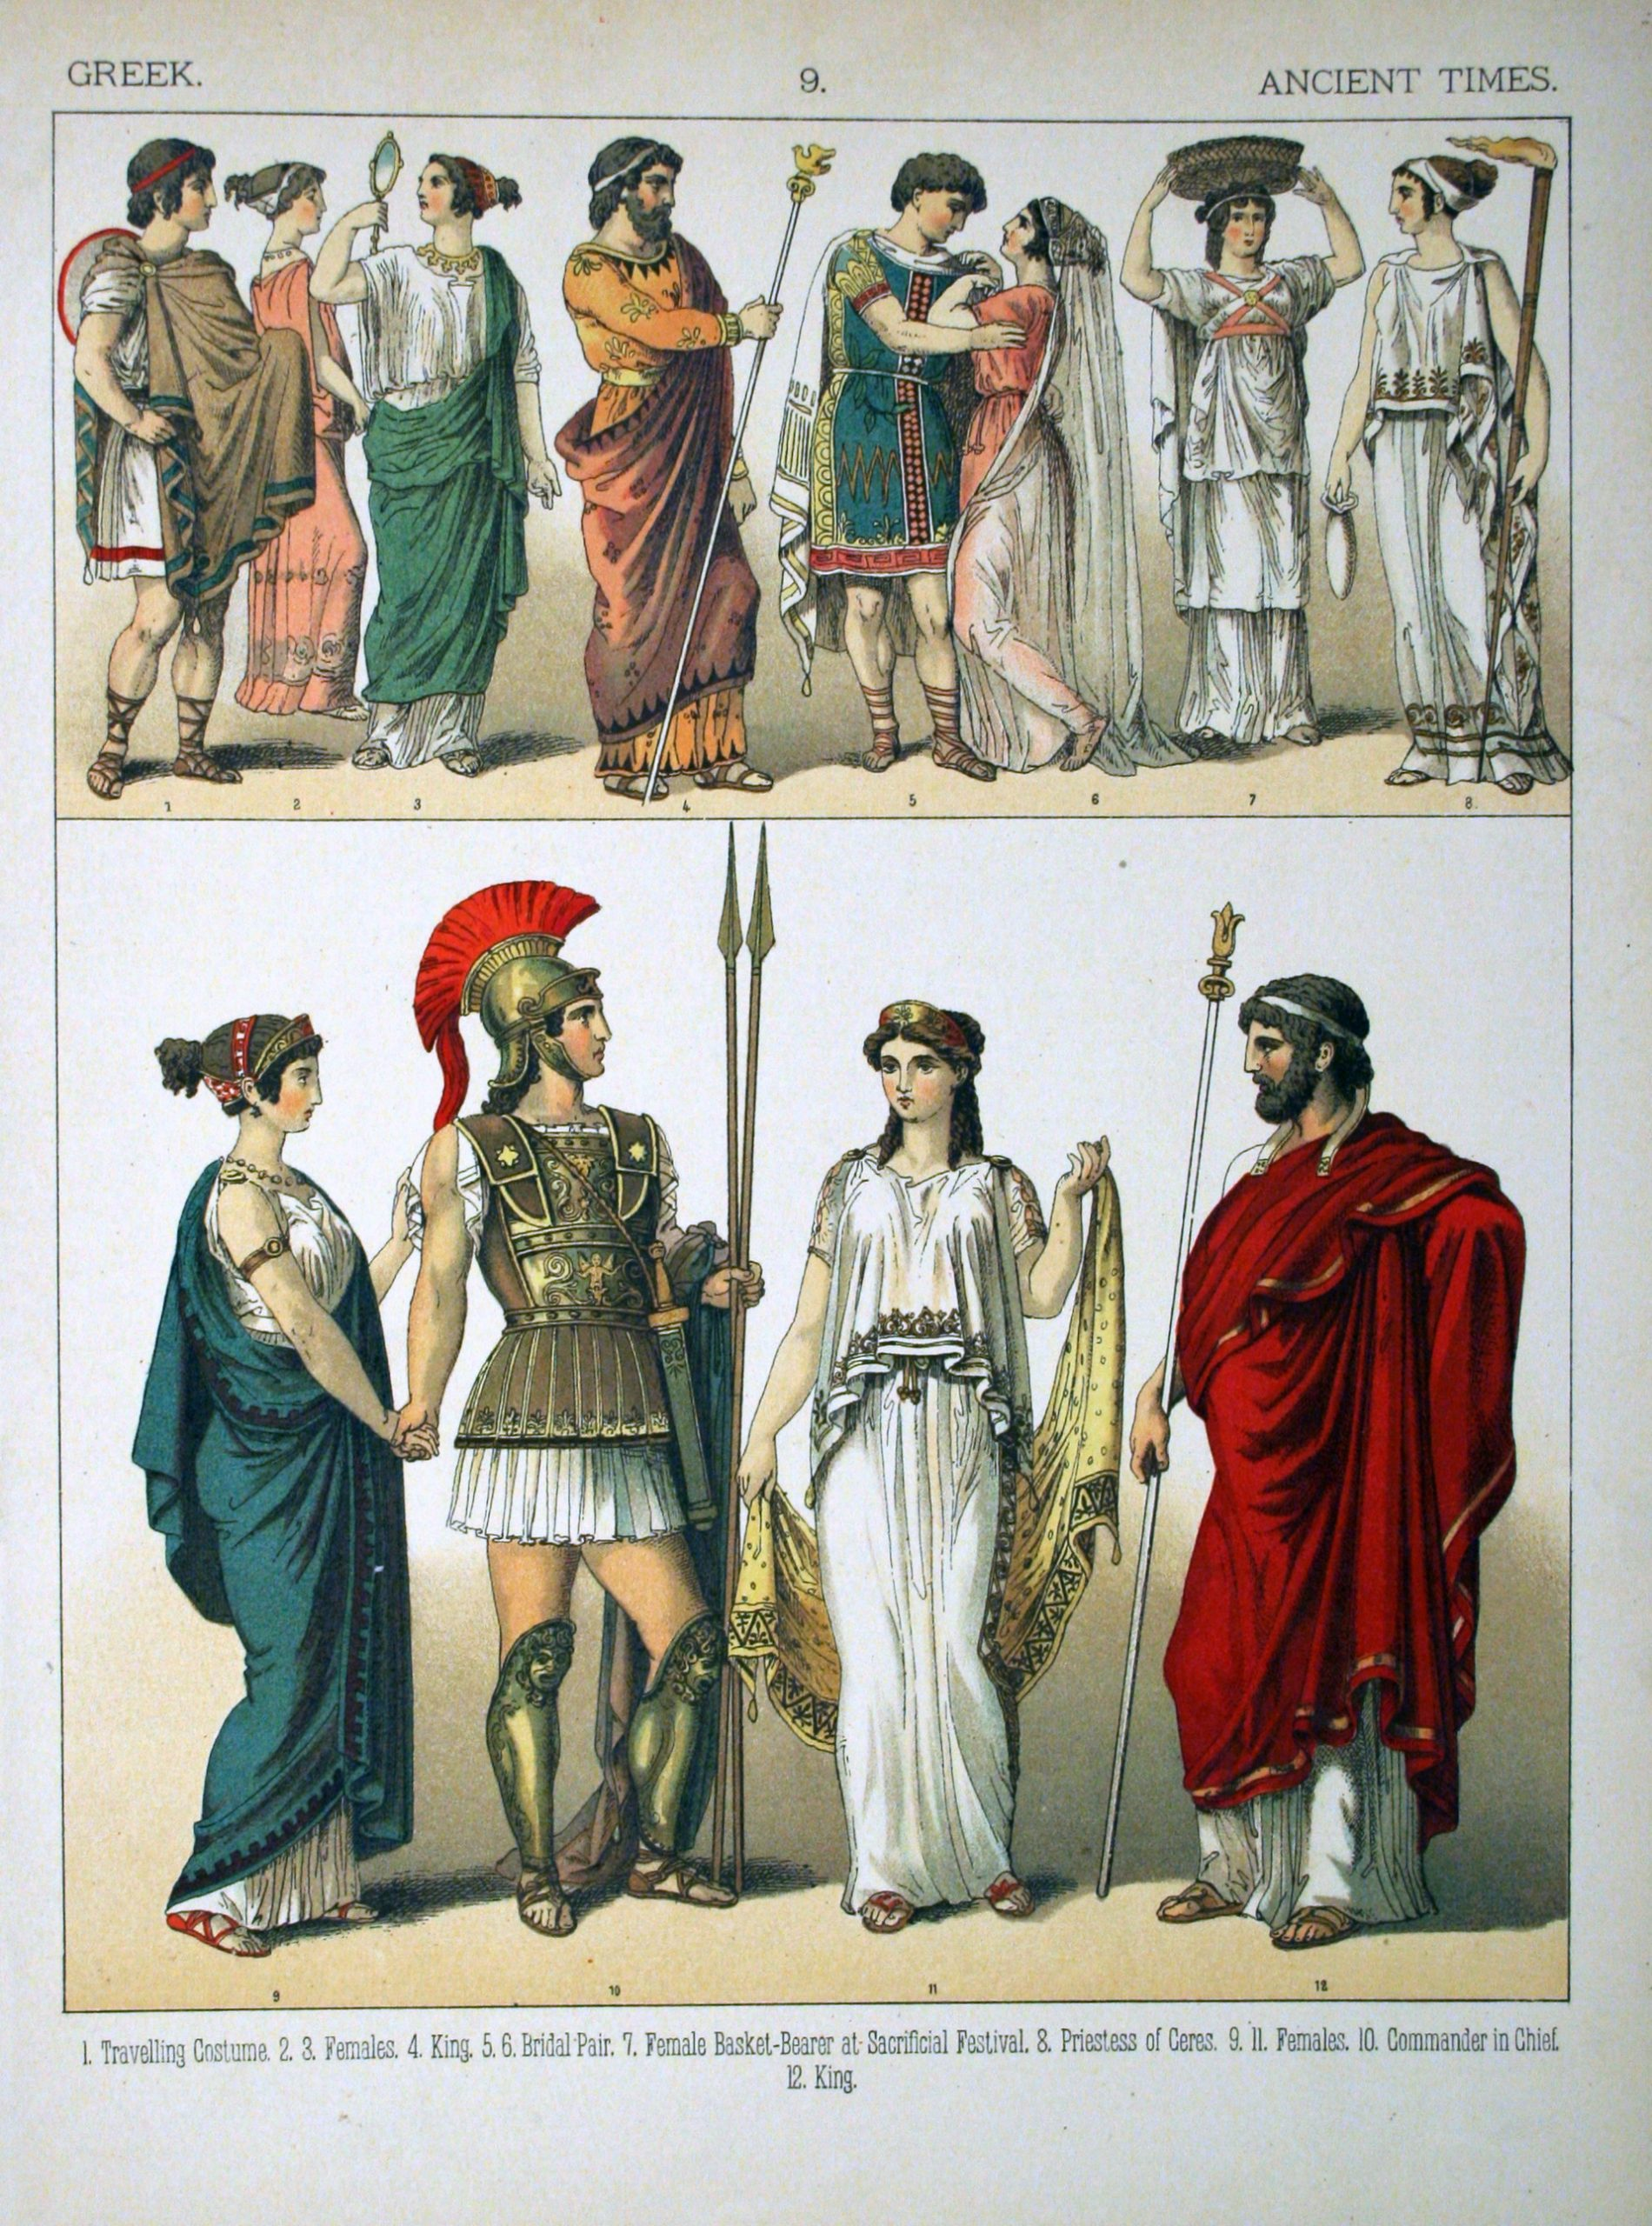 Famous Clothing of Ancient Greece